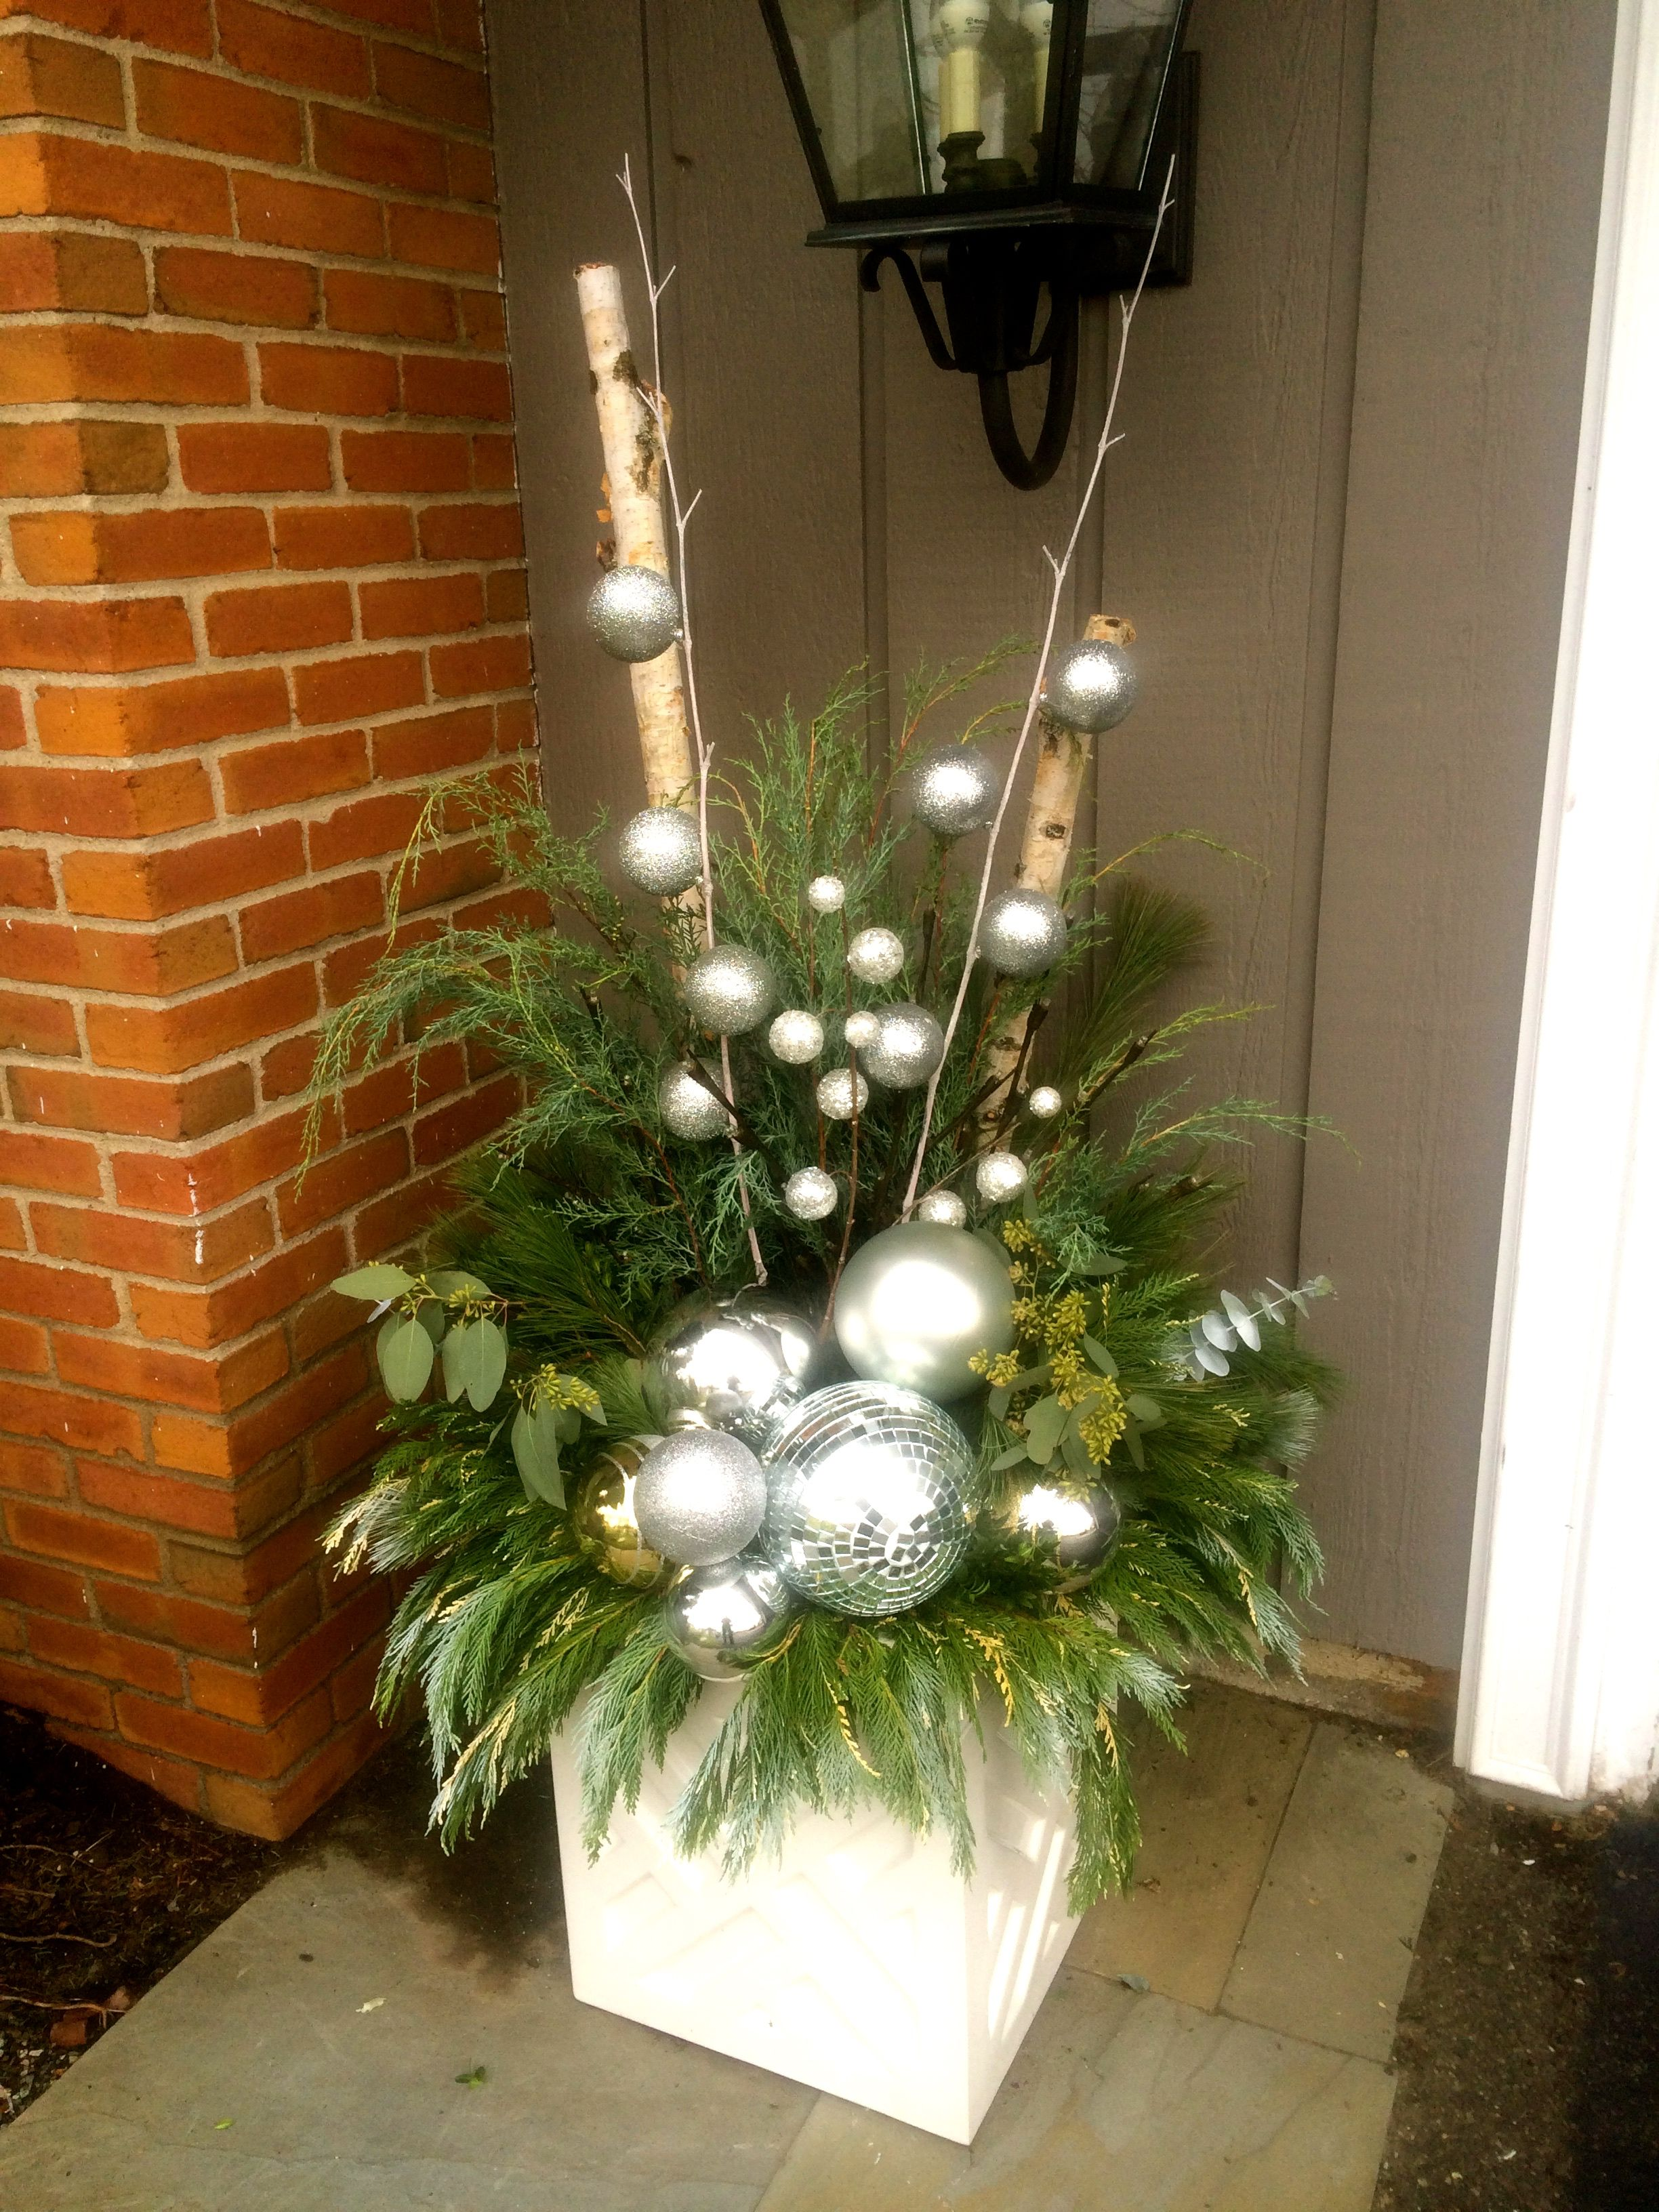 A Modern Twist On Holiday Planters Christmas Garden Decorations Outdoor Holiday Planters Christmas Urns